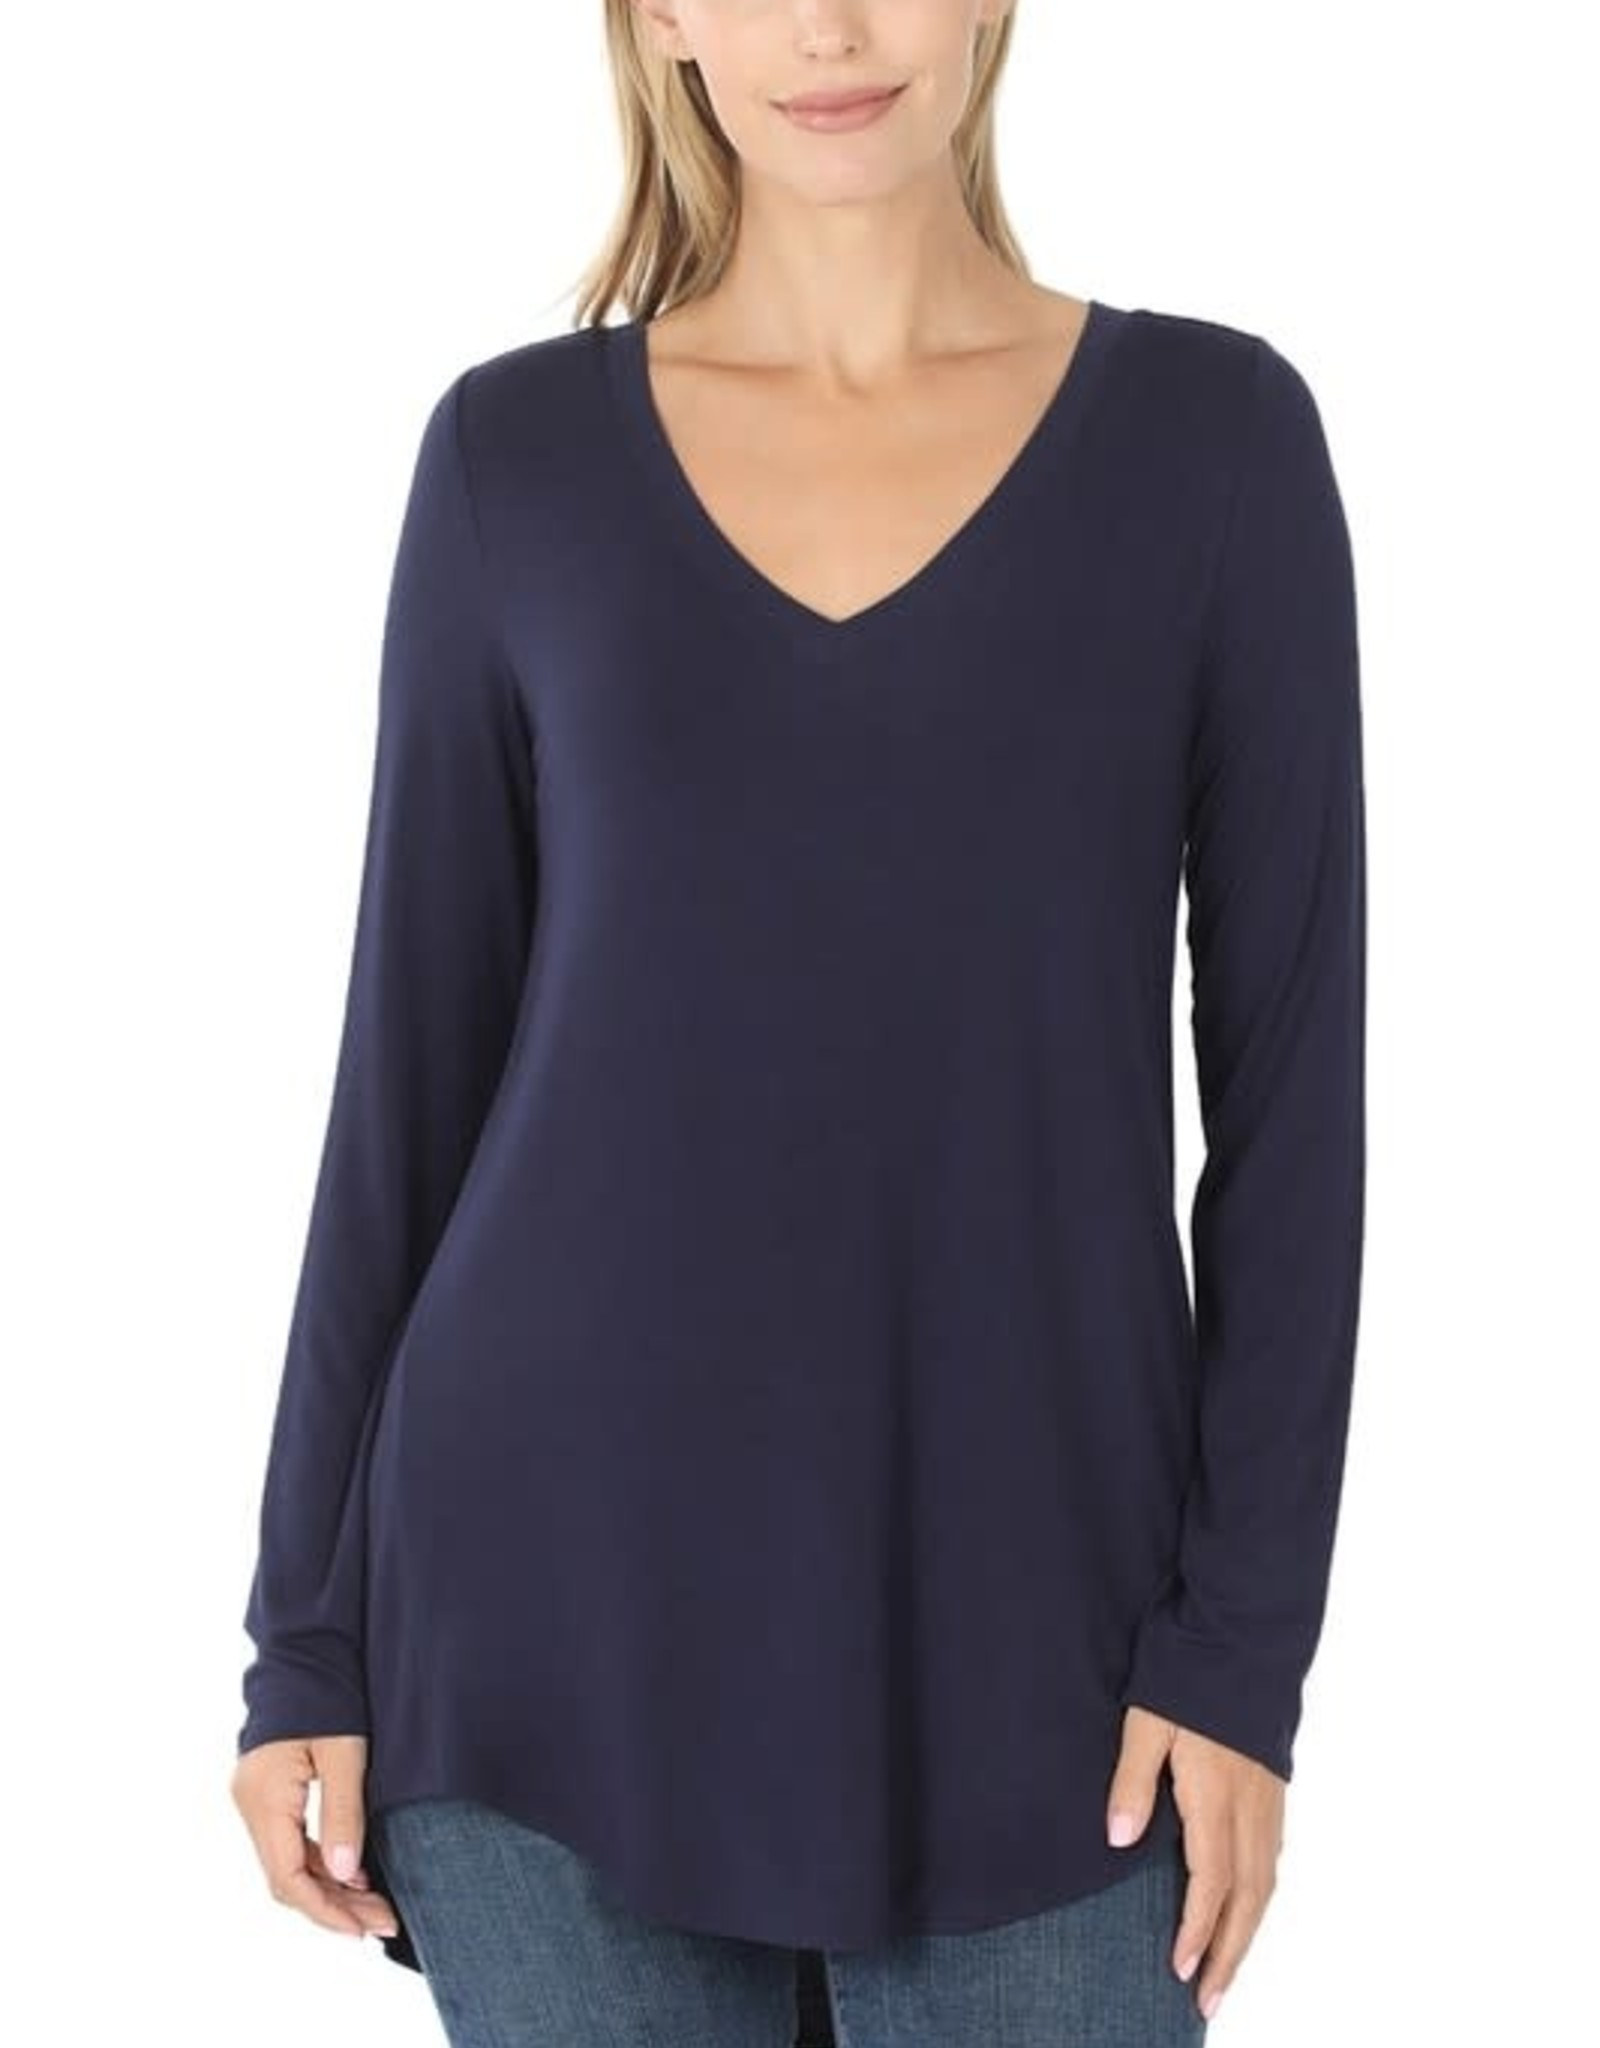 Miss Bliss Luxe Rayon LS V Neck Top-